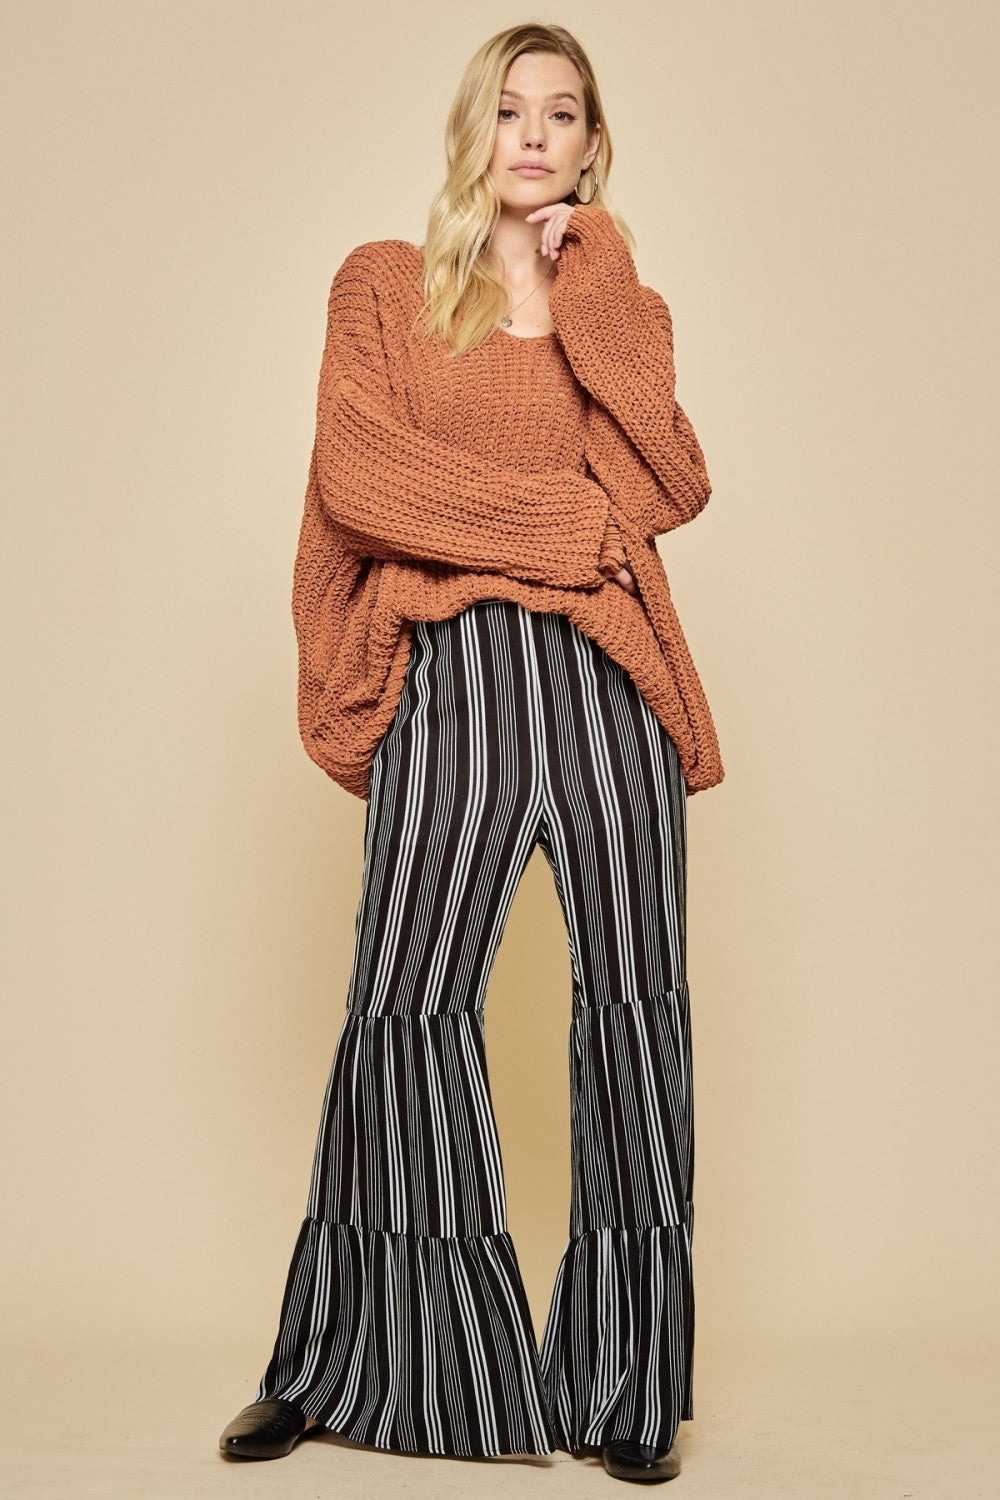 Striped Bell Pants - The Dainty Cactus Boutique